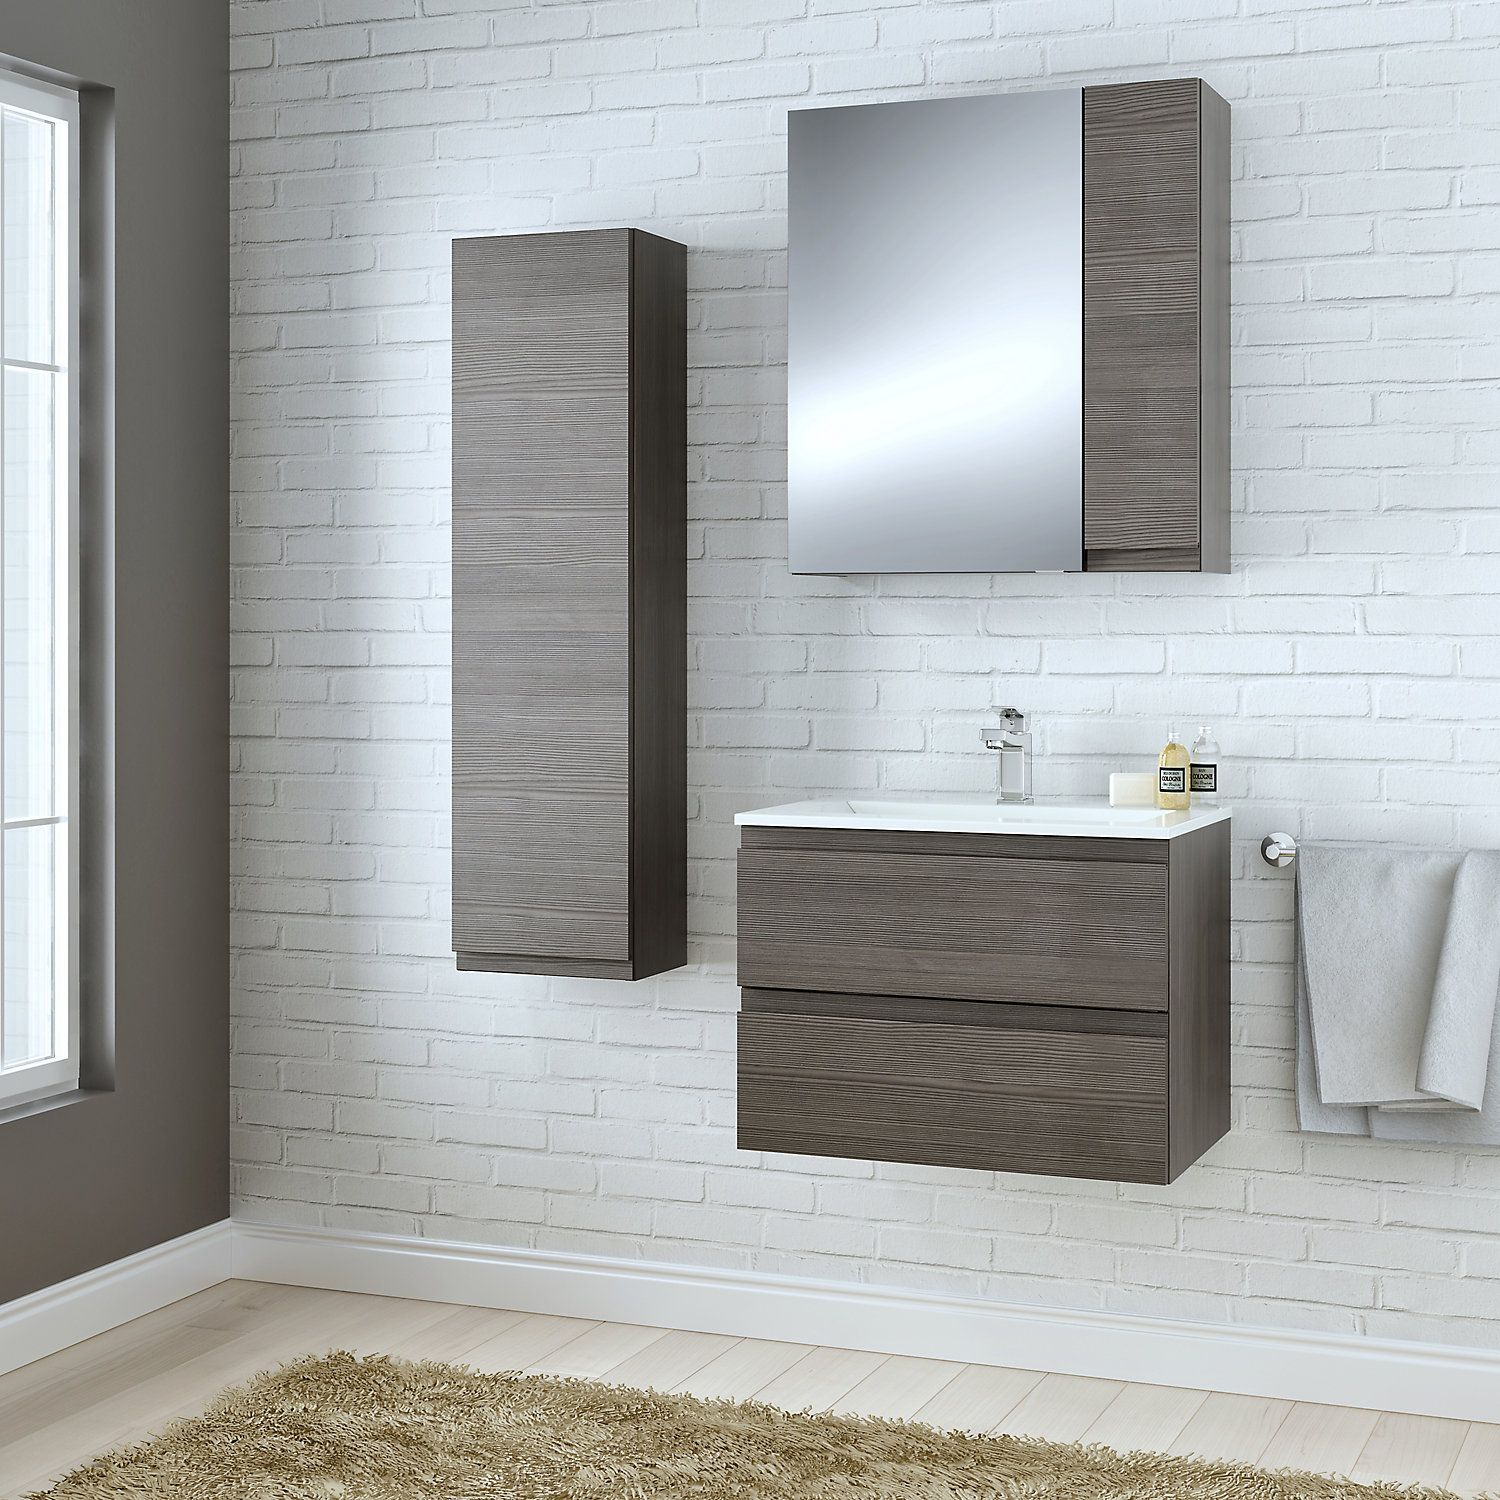 Cooke Lewis Paolo Bodega Grey Vanity Unit Basin Set Grey Furniture Grey Bathroom Furniture Bathroom Furniture